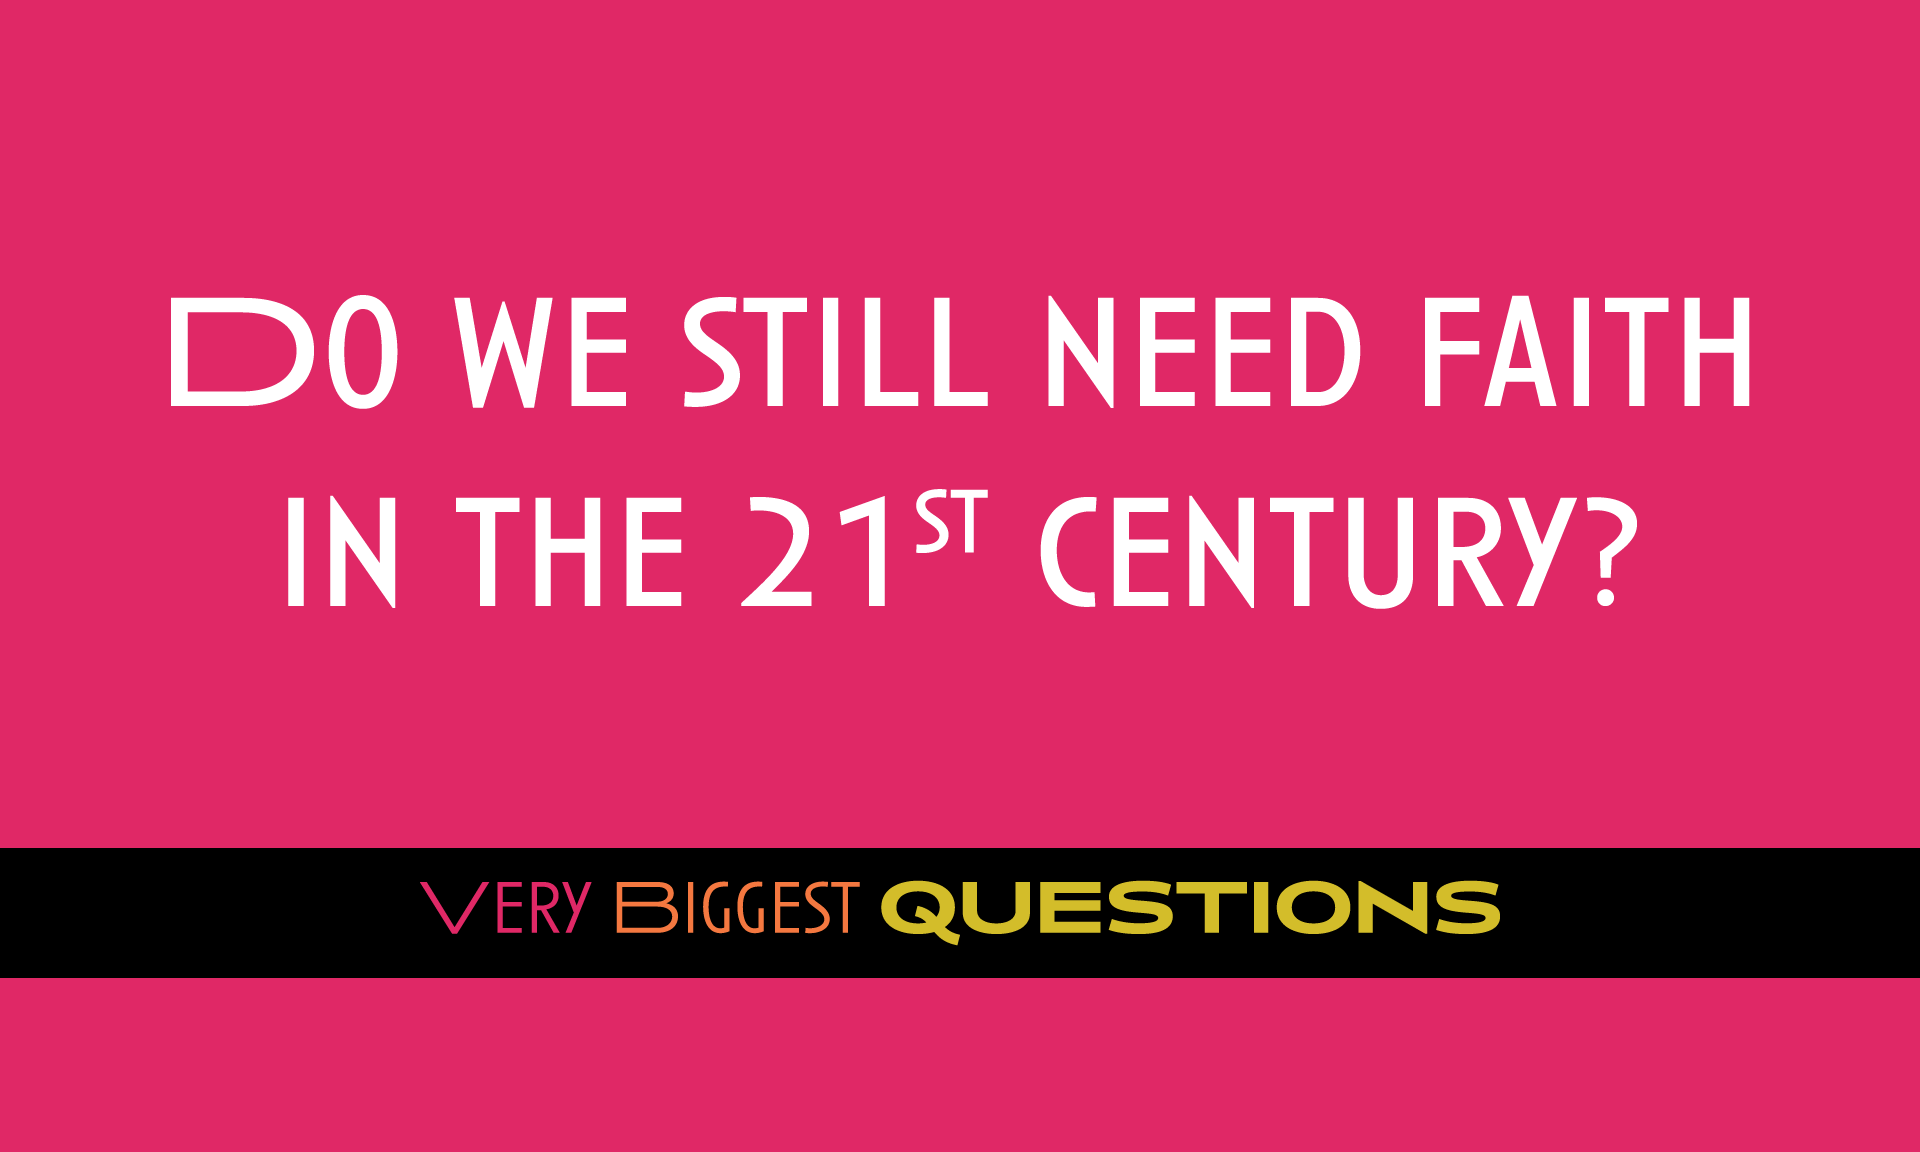 Do We Still Need Faith in the 21st Century?